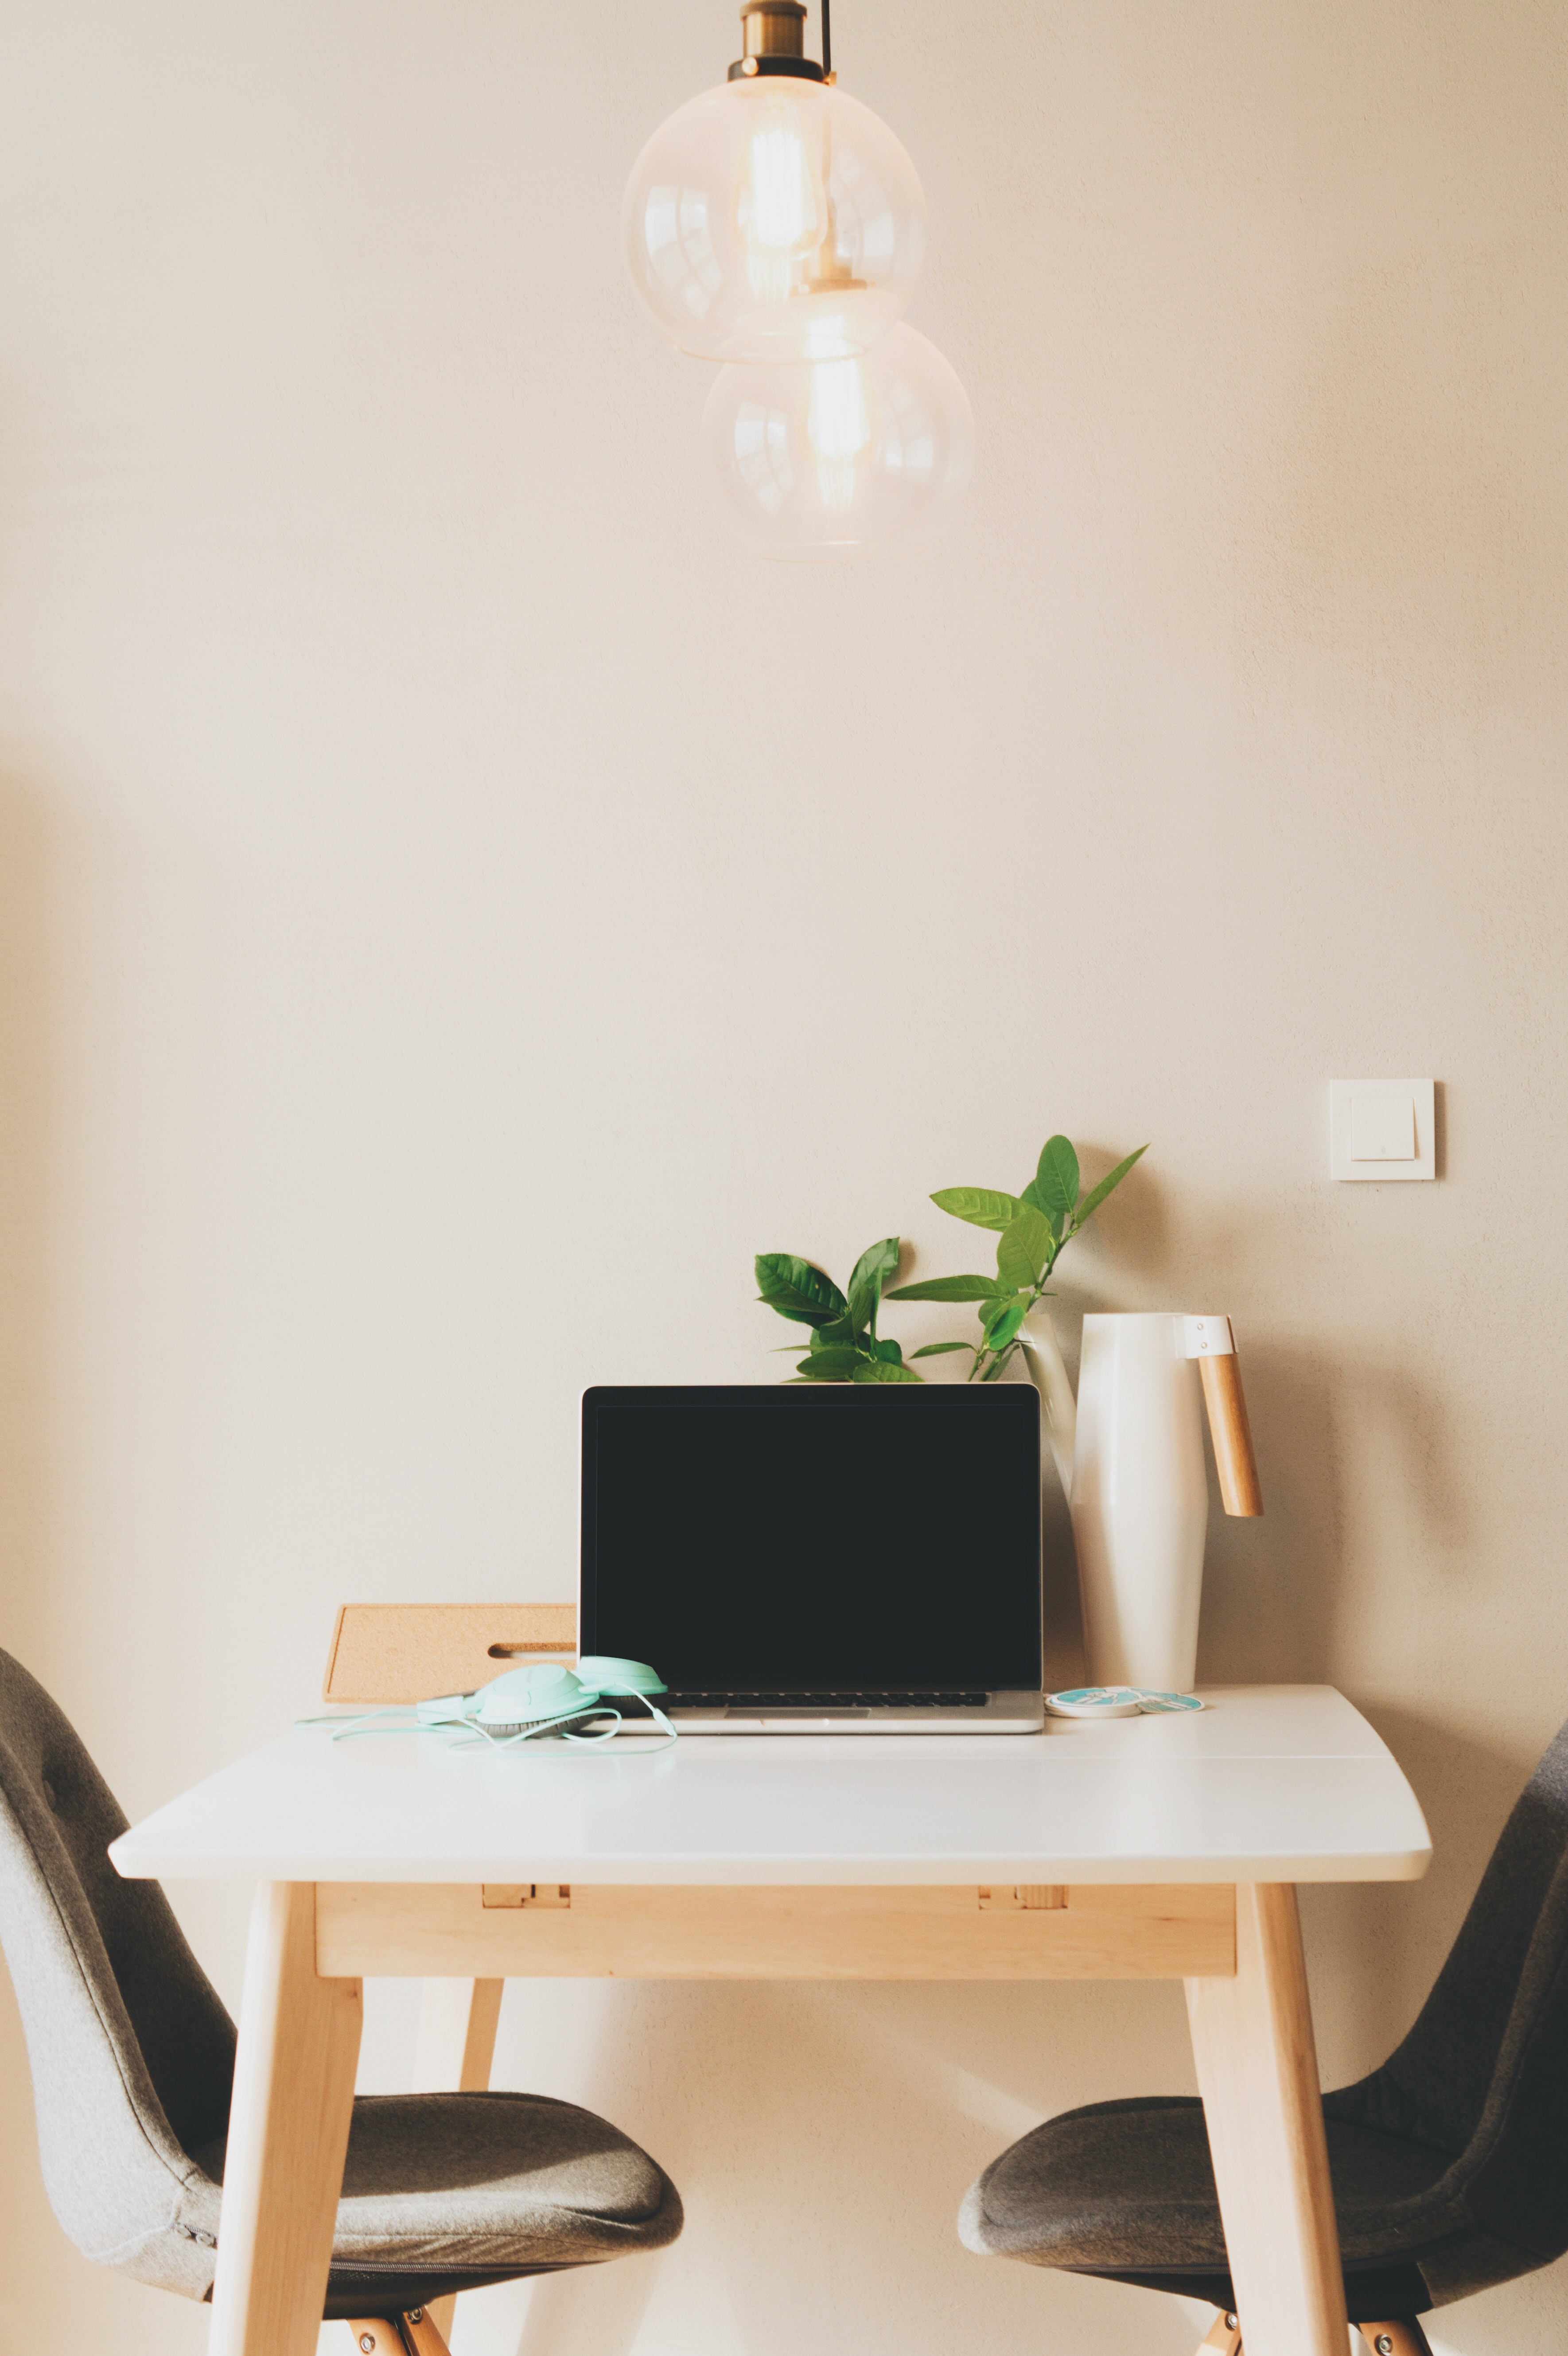 Bright light bulbs above a table with a laptop, two chairs, headphones, watering can, and a plant